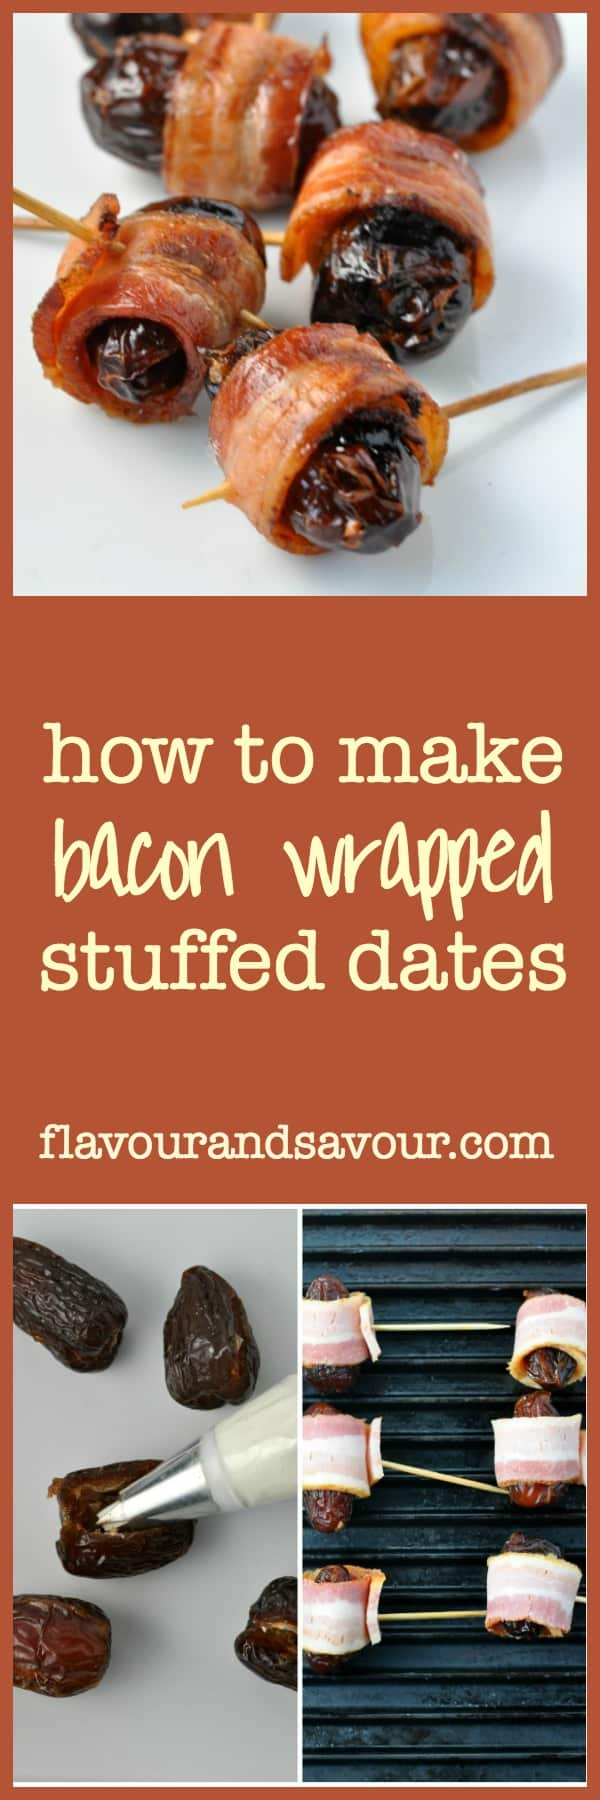 How to make bacon wrapped stuffed dates. Tips and tricks to avoid messy filling and raw bacon! |www.flavourandsavour.com